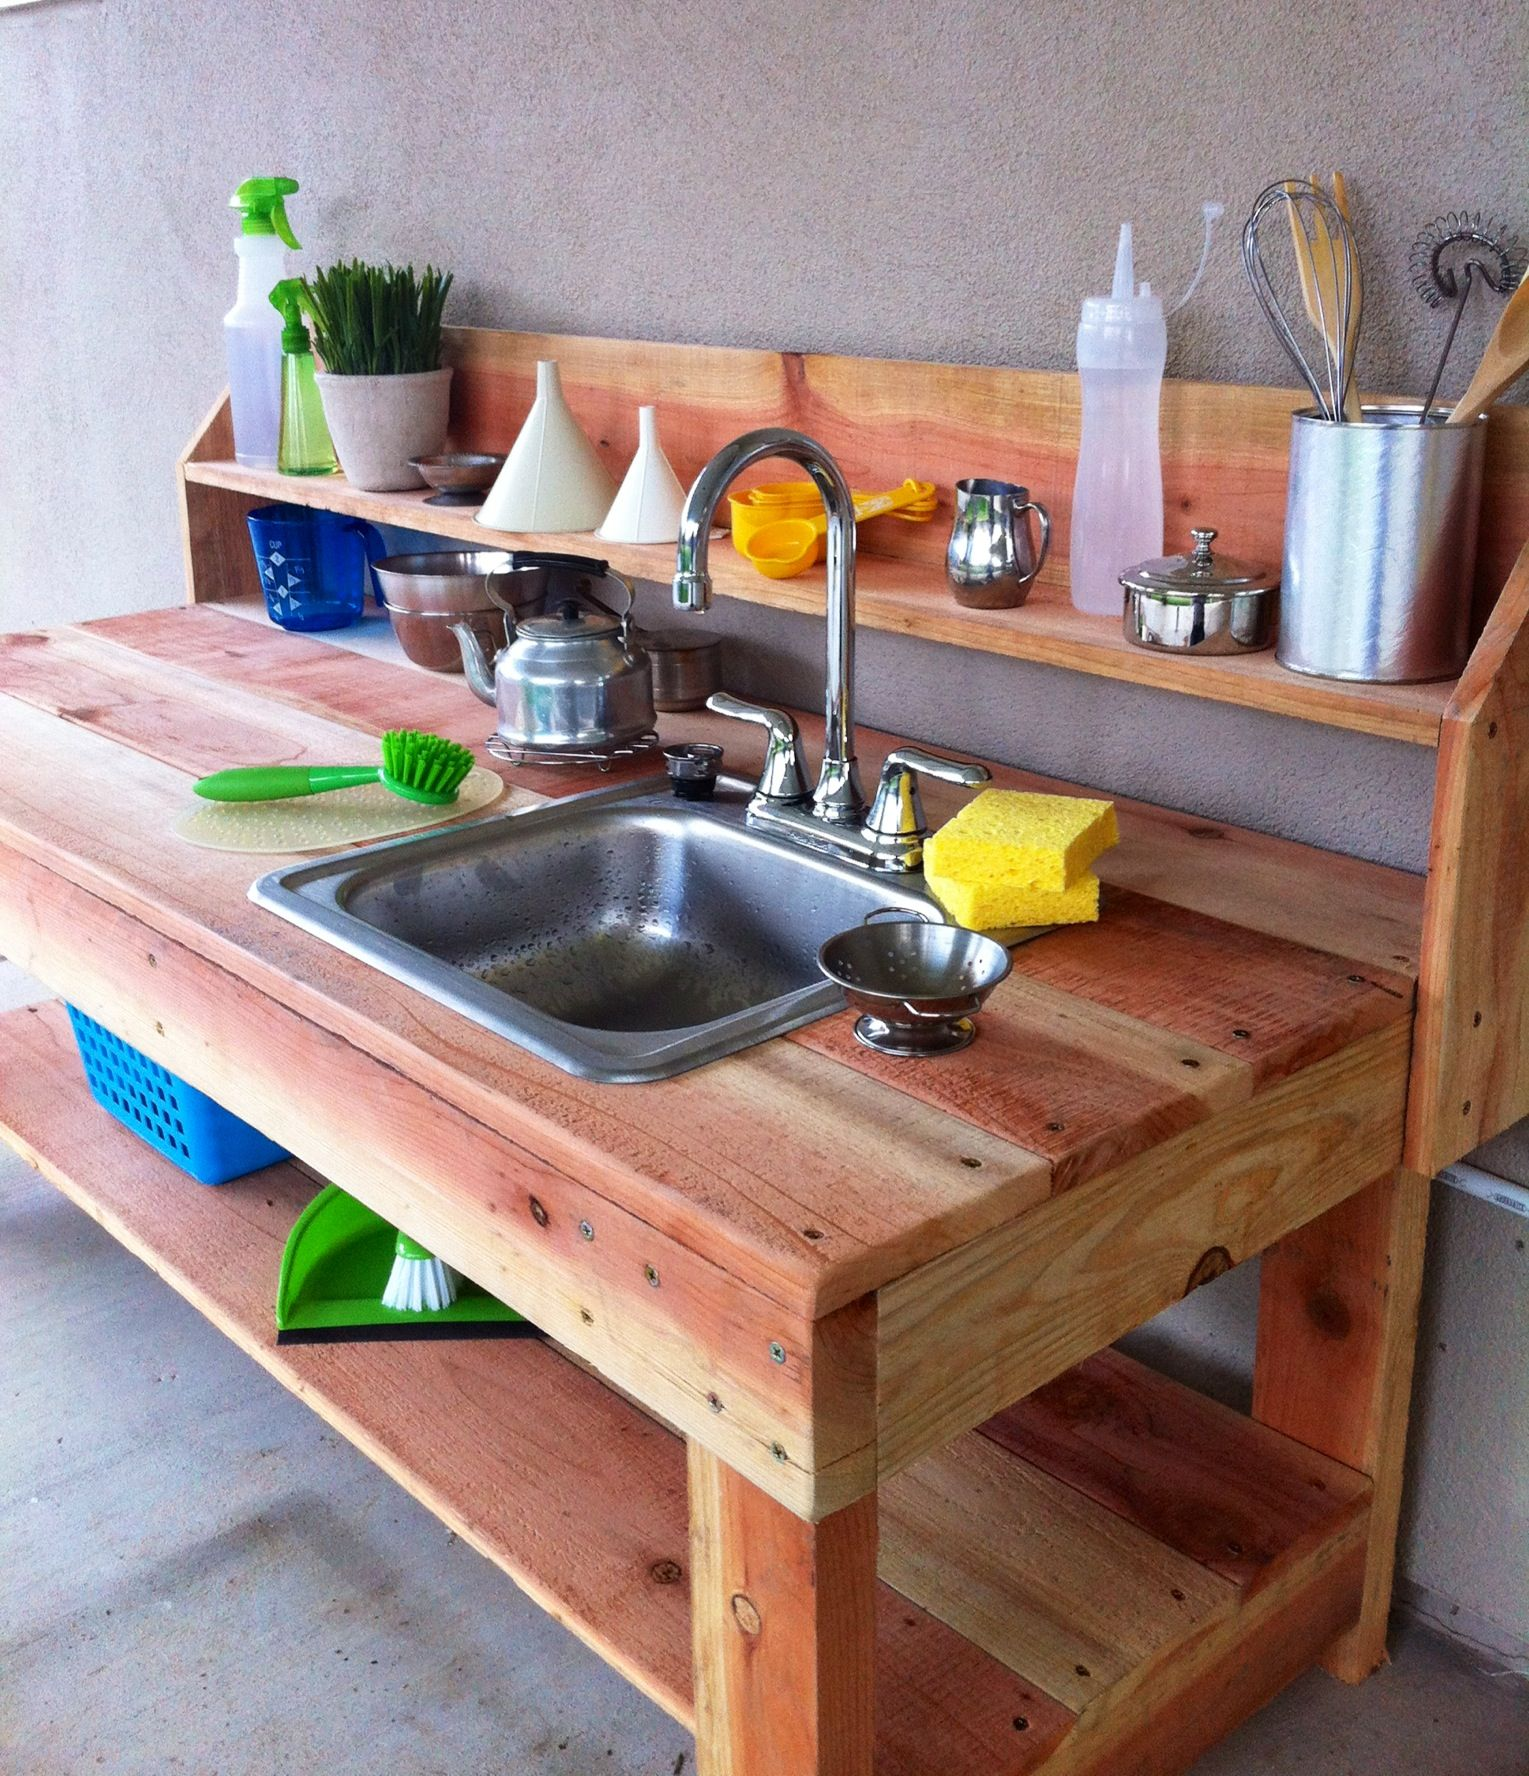 110 Mud Kitchens Ideas Mud Kitchen Outdoor Play Spaces Outdoor Classroom